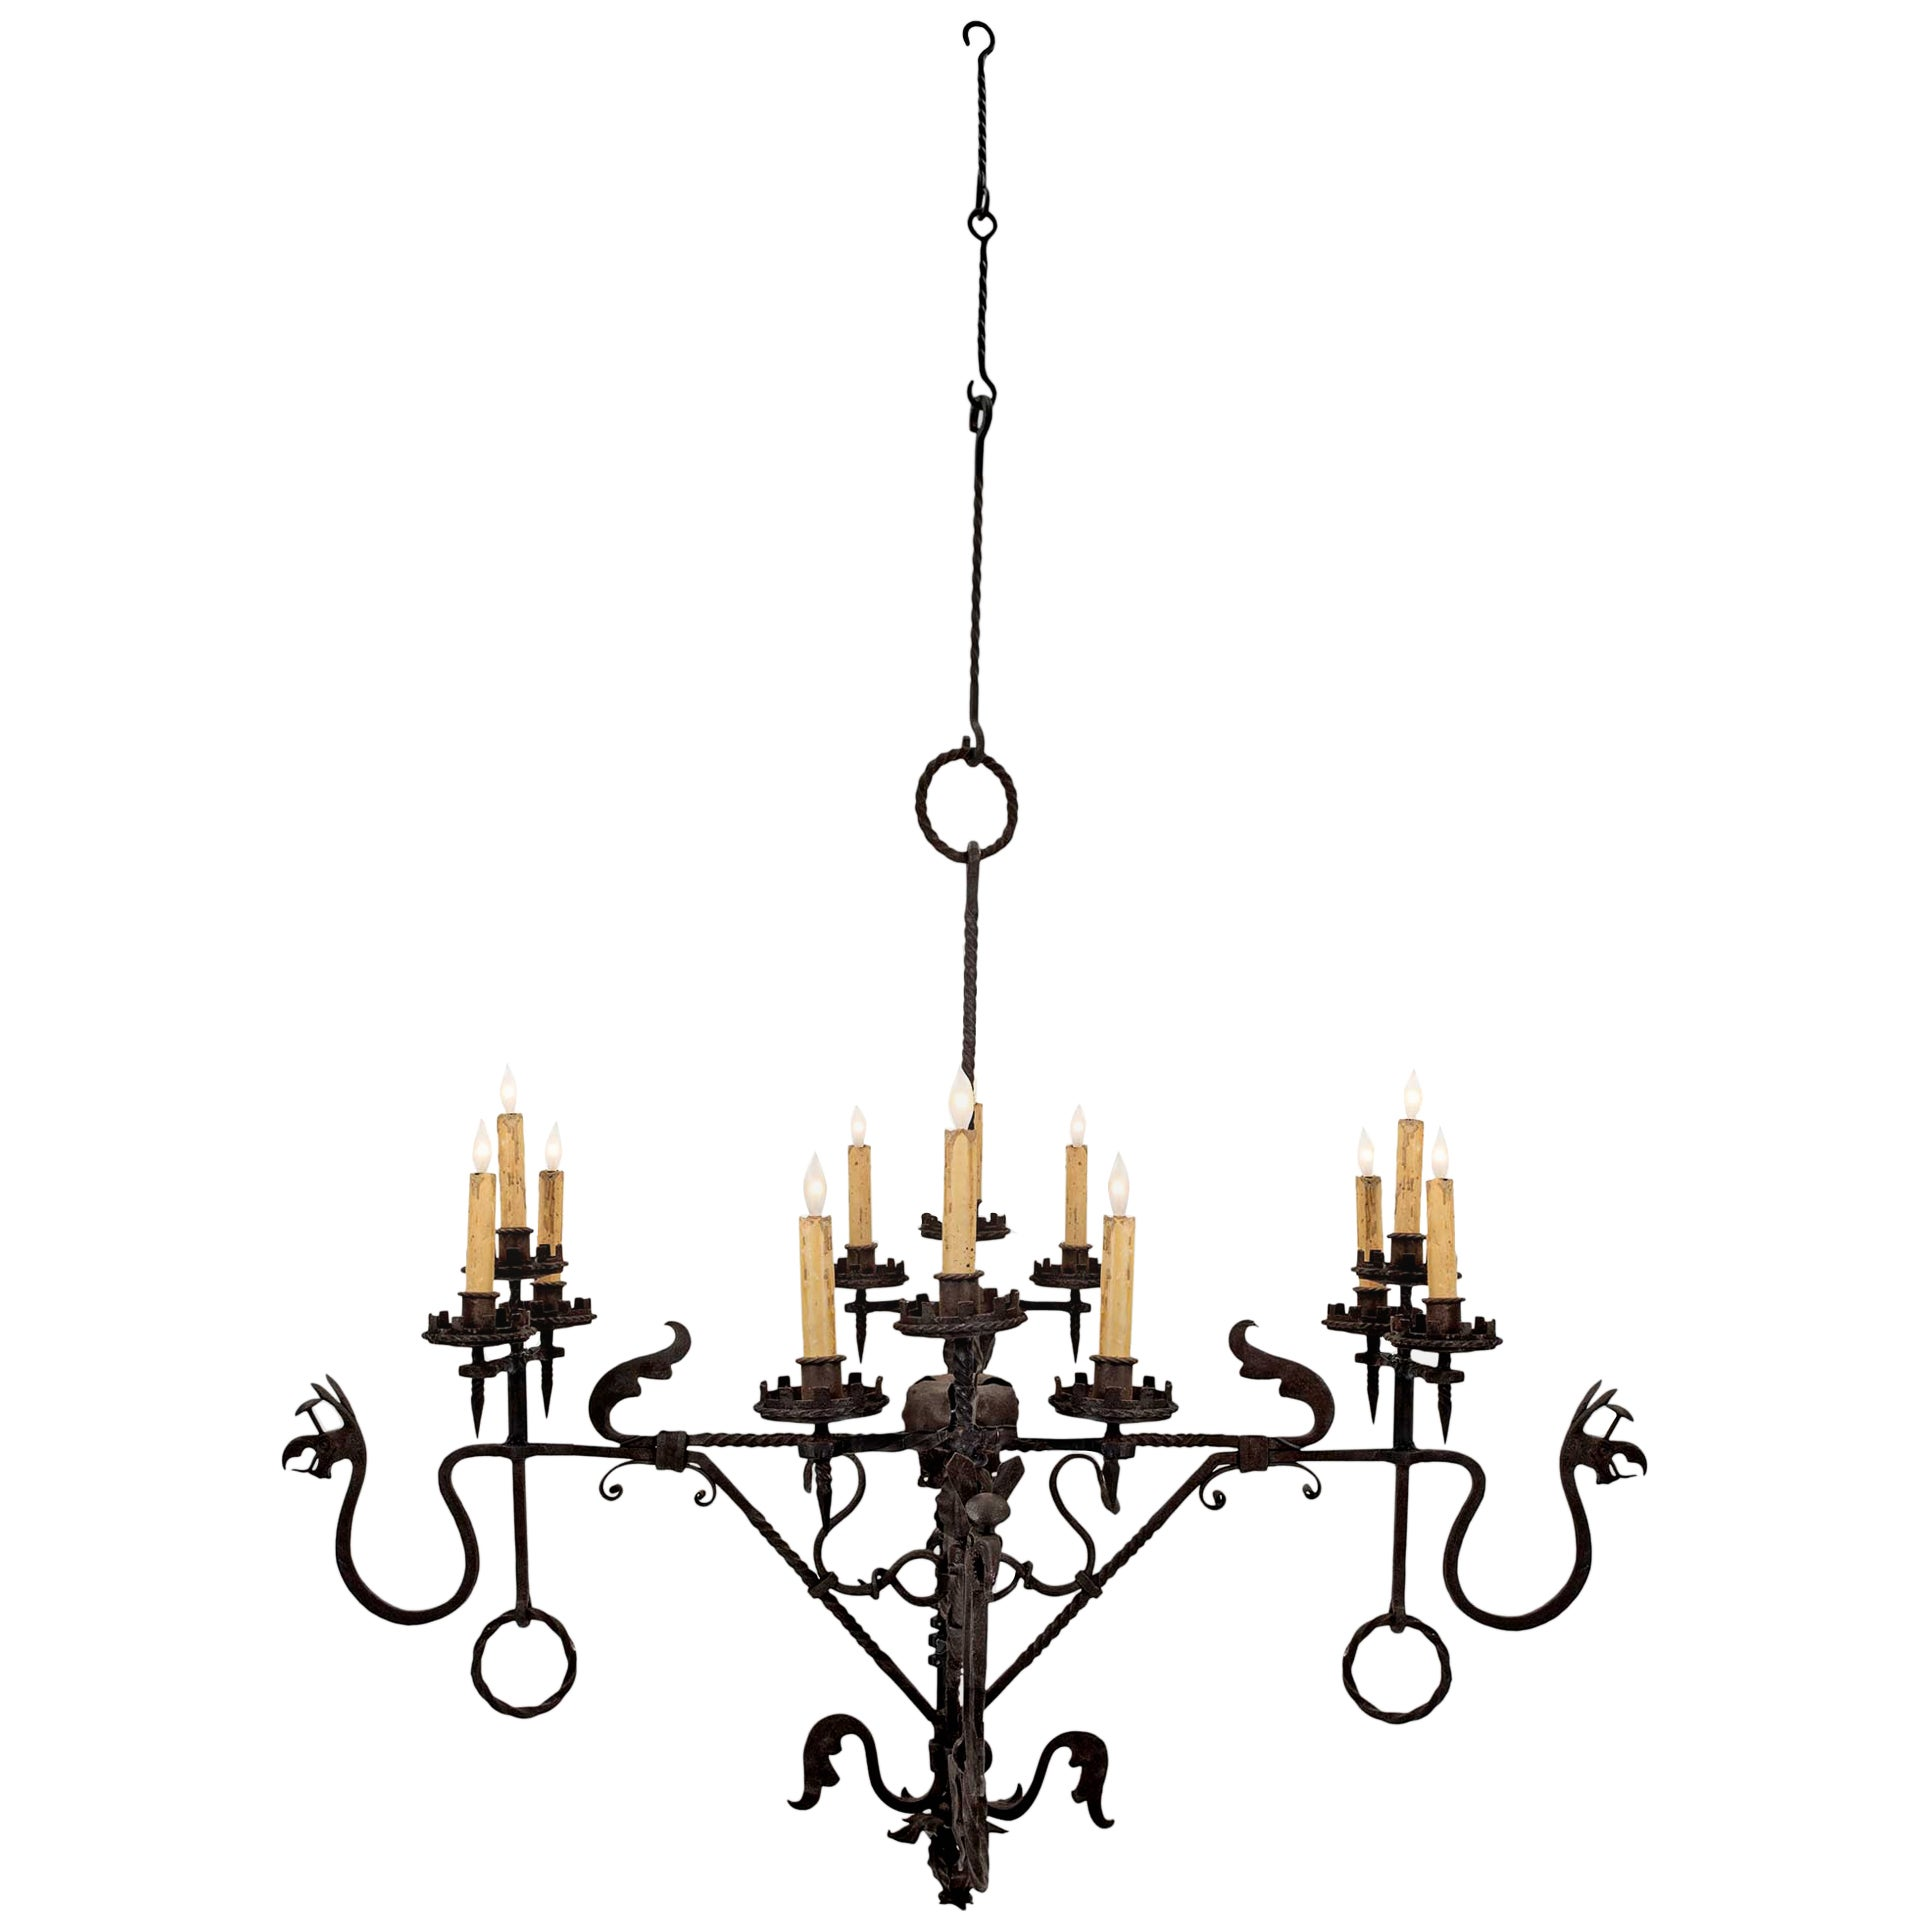 French Mid-19th Century Wrought Iron Twelve-Light Chandelier